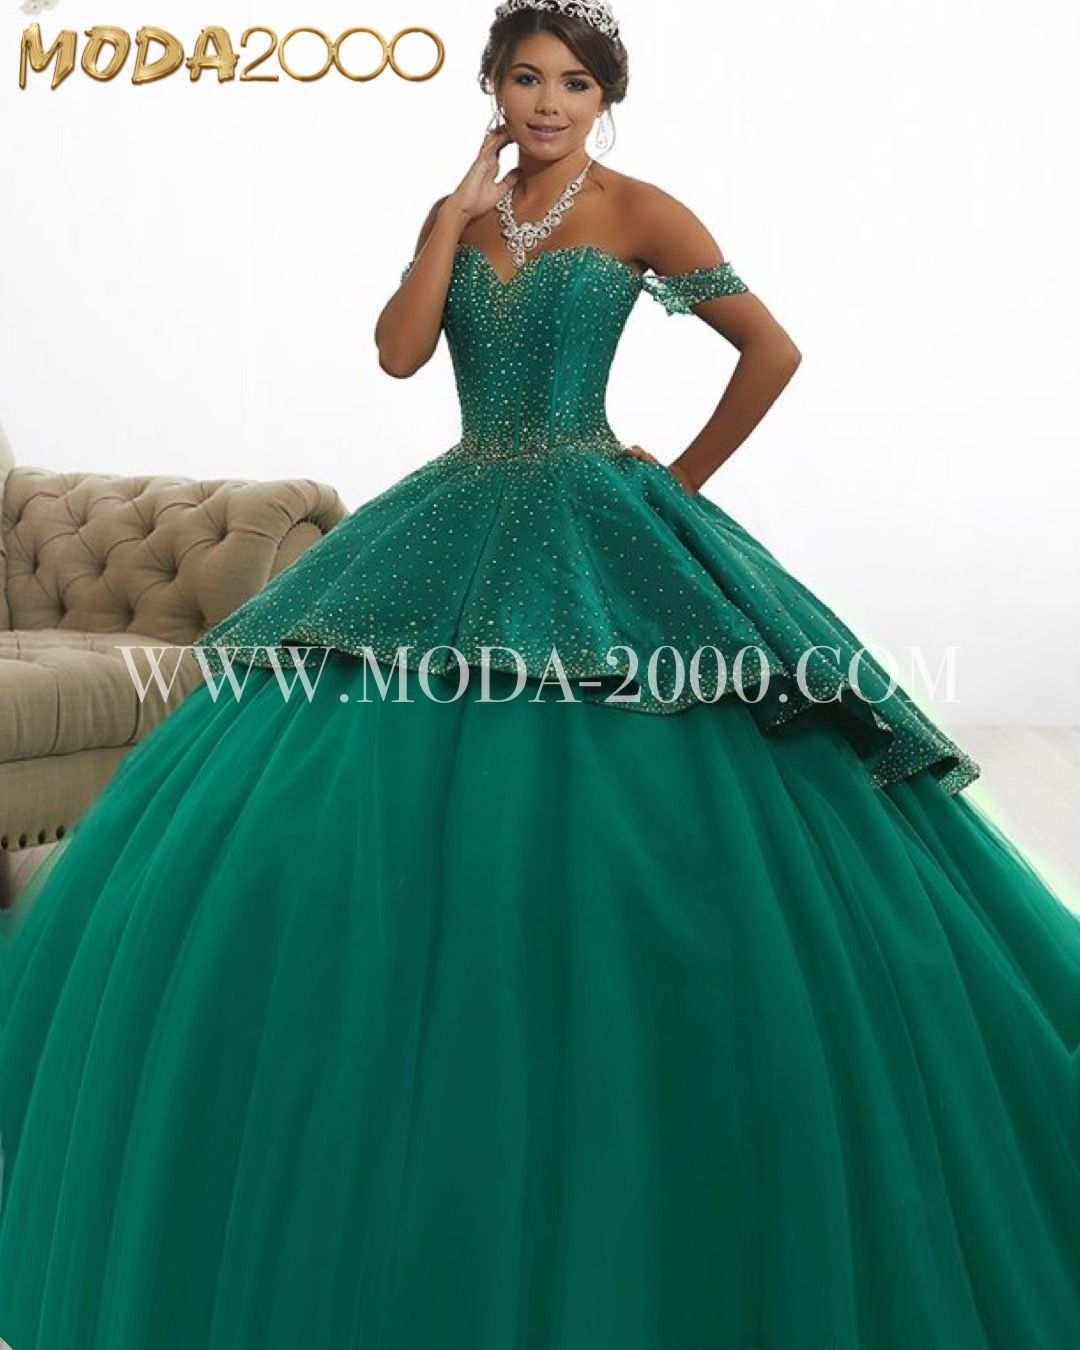 88df374f7d6 2-1 off the shoulder emerald green halter quinceanera dress available at  Moda 2000✨ Instagram   moda2000inc